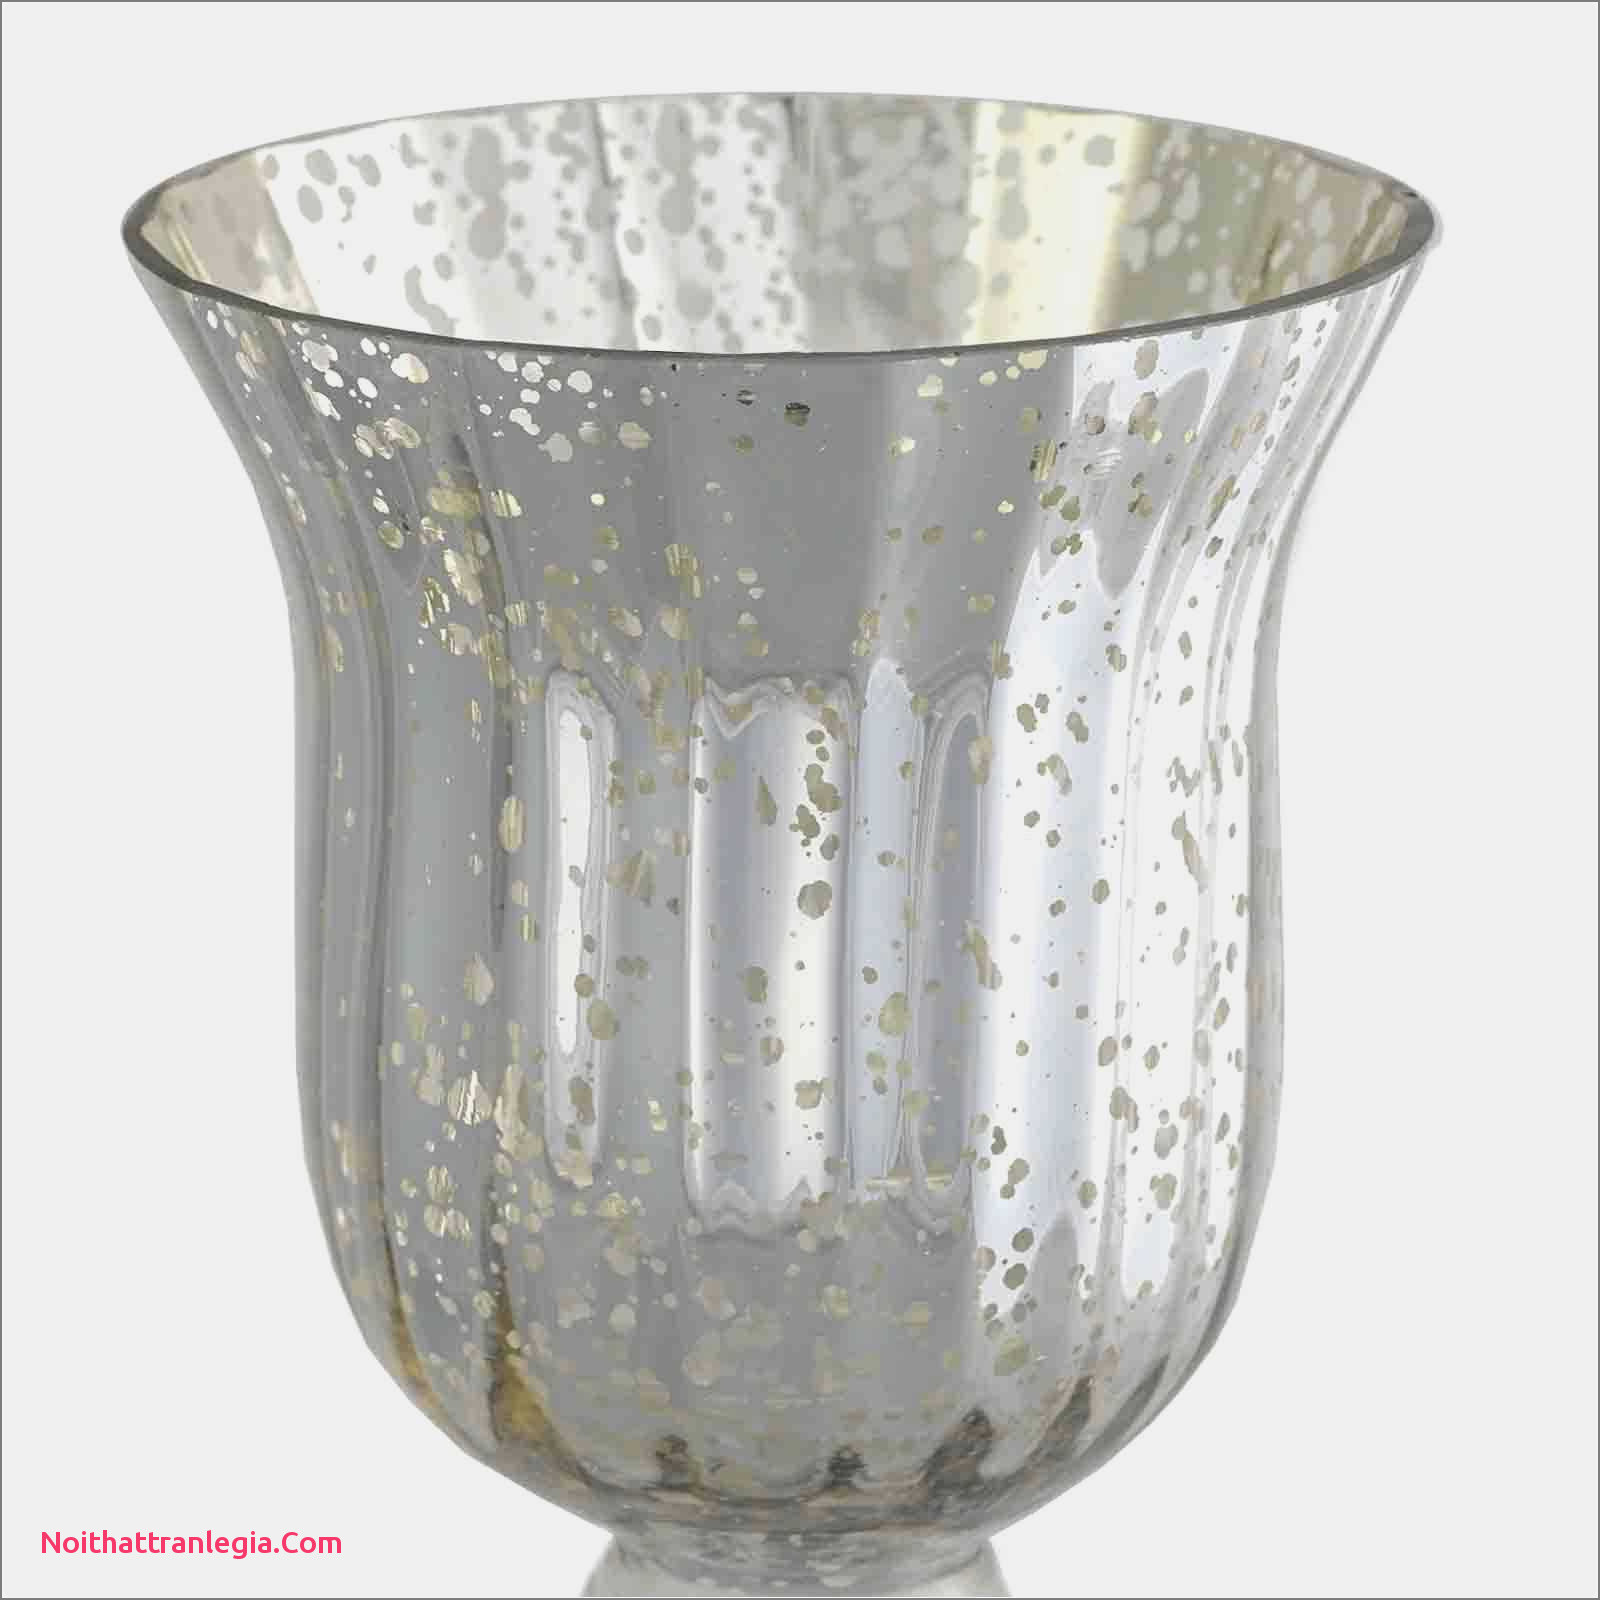 cheap tall gold vases of 20 wedding vases noithattranlegia vases design pertaining to wedding guest gift ideas inspirational candles for wedding favors superb pe s5h vases candle vase i